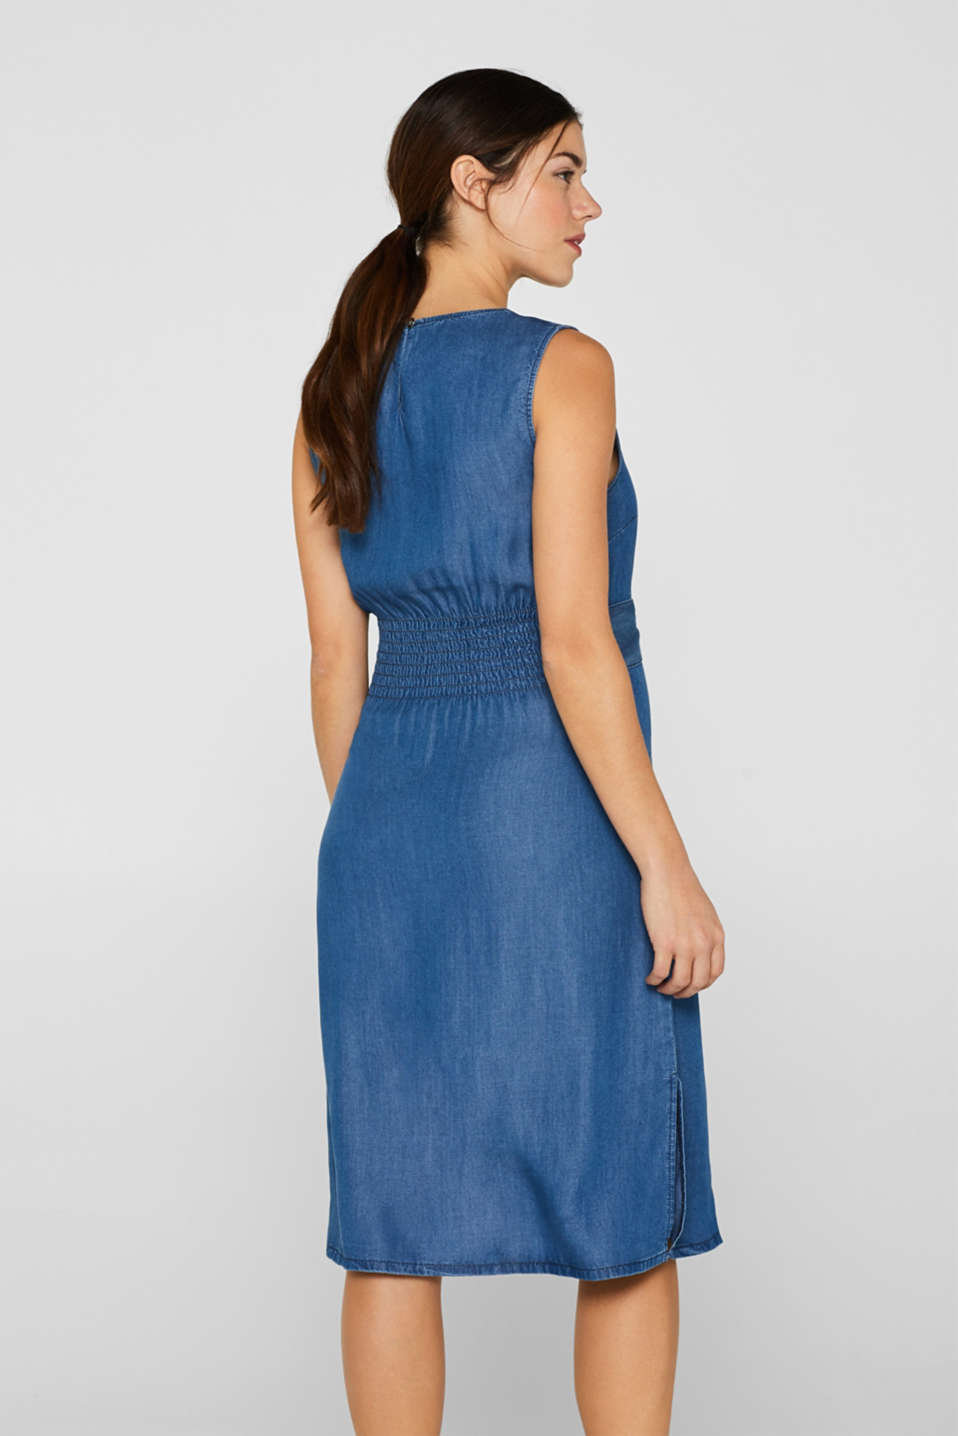 Denim dress with a belt, 100% lyocell, LCLIGHT BLUE, detail image number 3